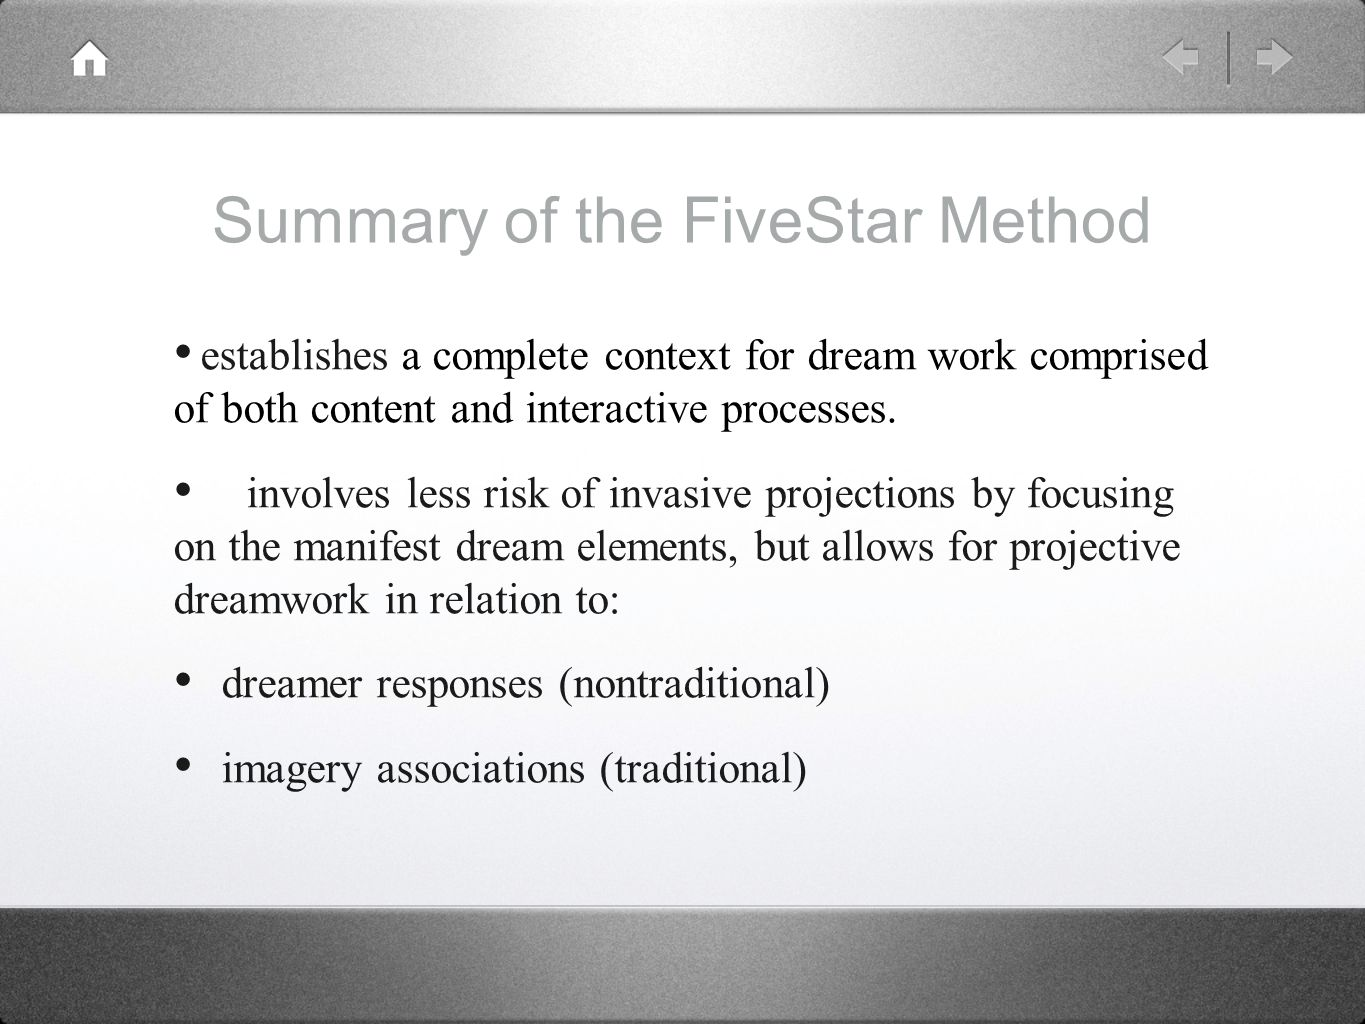 Summary of the FiveStar Method establishes a complete context for dream work comprised of both content and interactive processes.